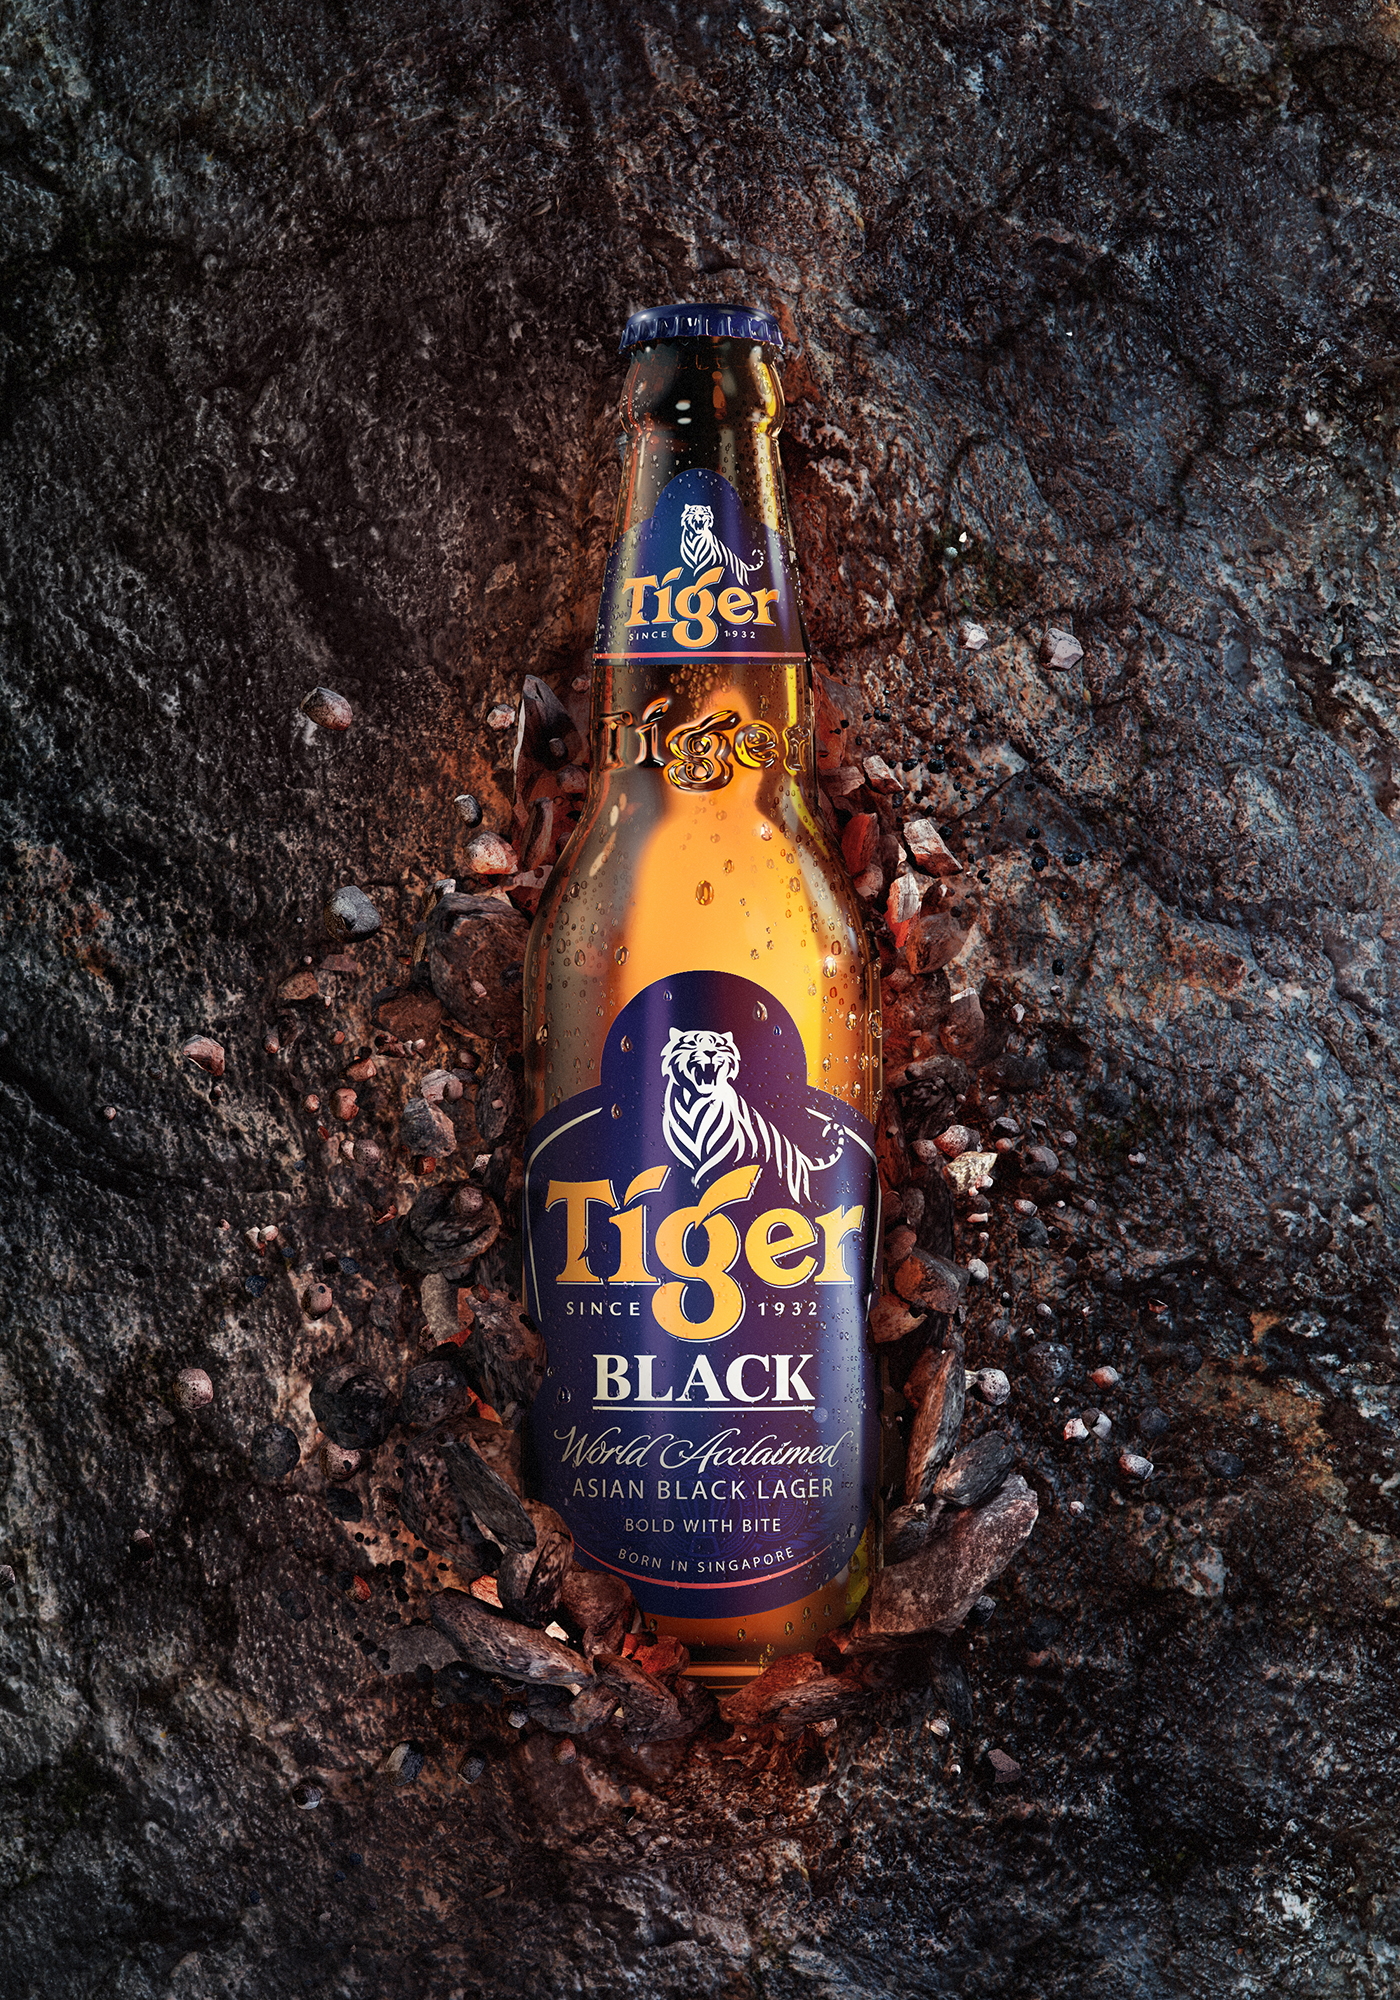 Tiger Black - A commercial key visual graphic design by Machineast Singapore